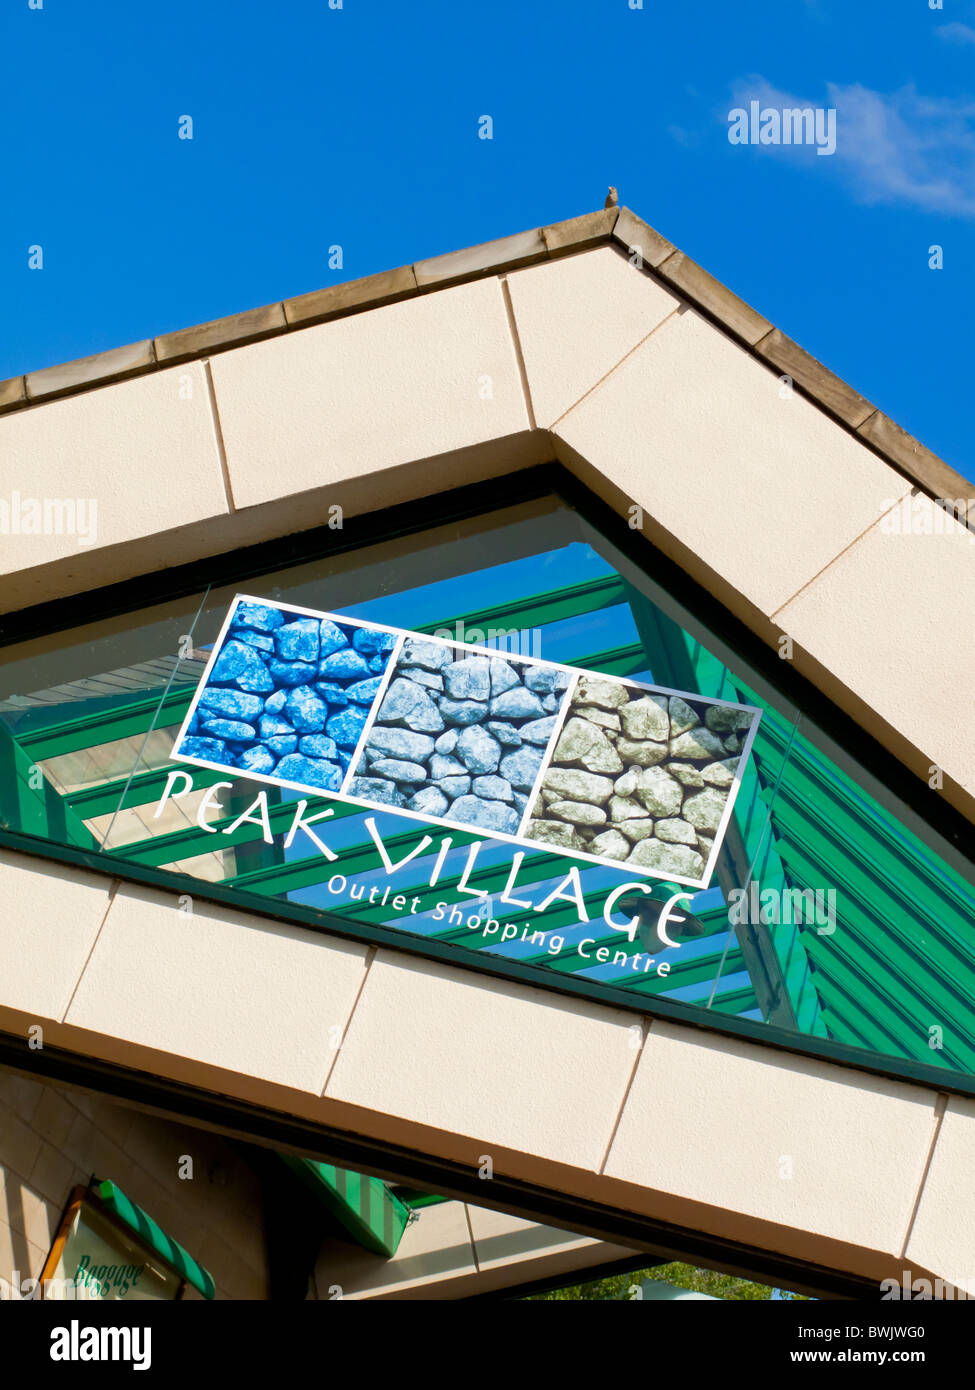 brand new 168d4 6f7ea Sign at entrance to Peak Village Outlet Shopping Centre at ...